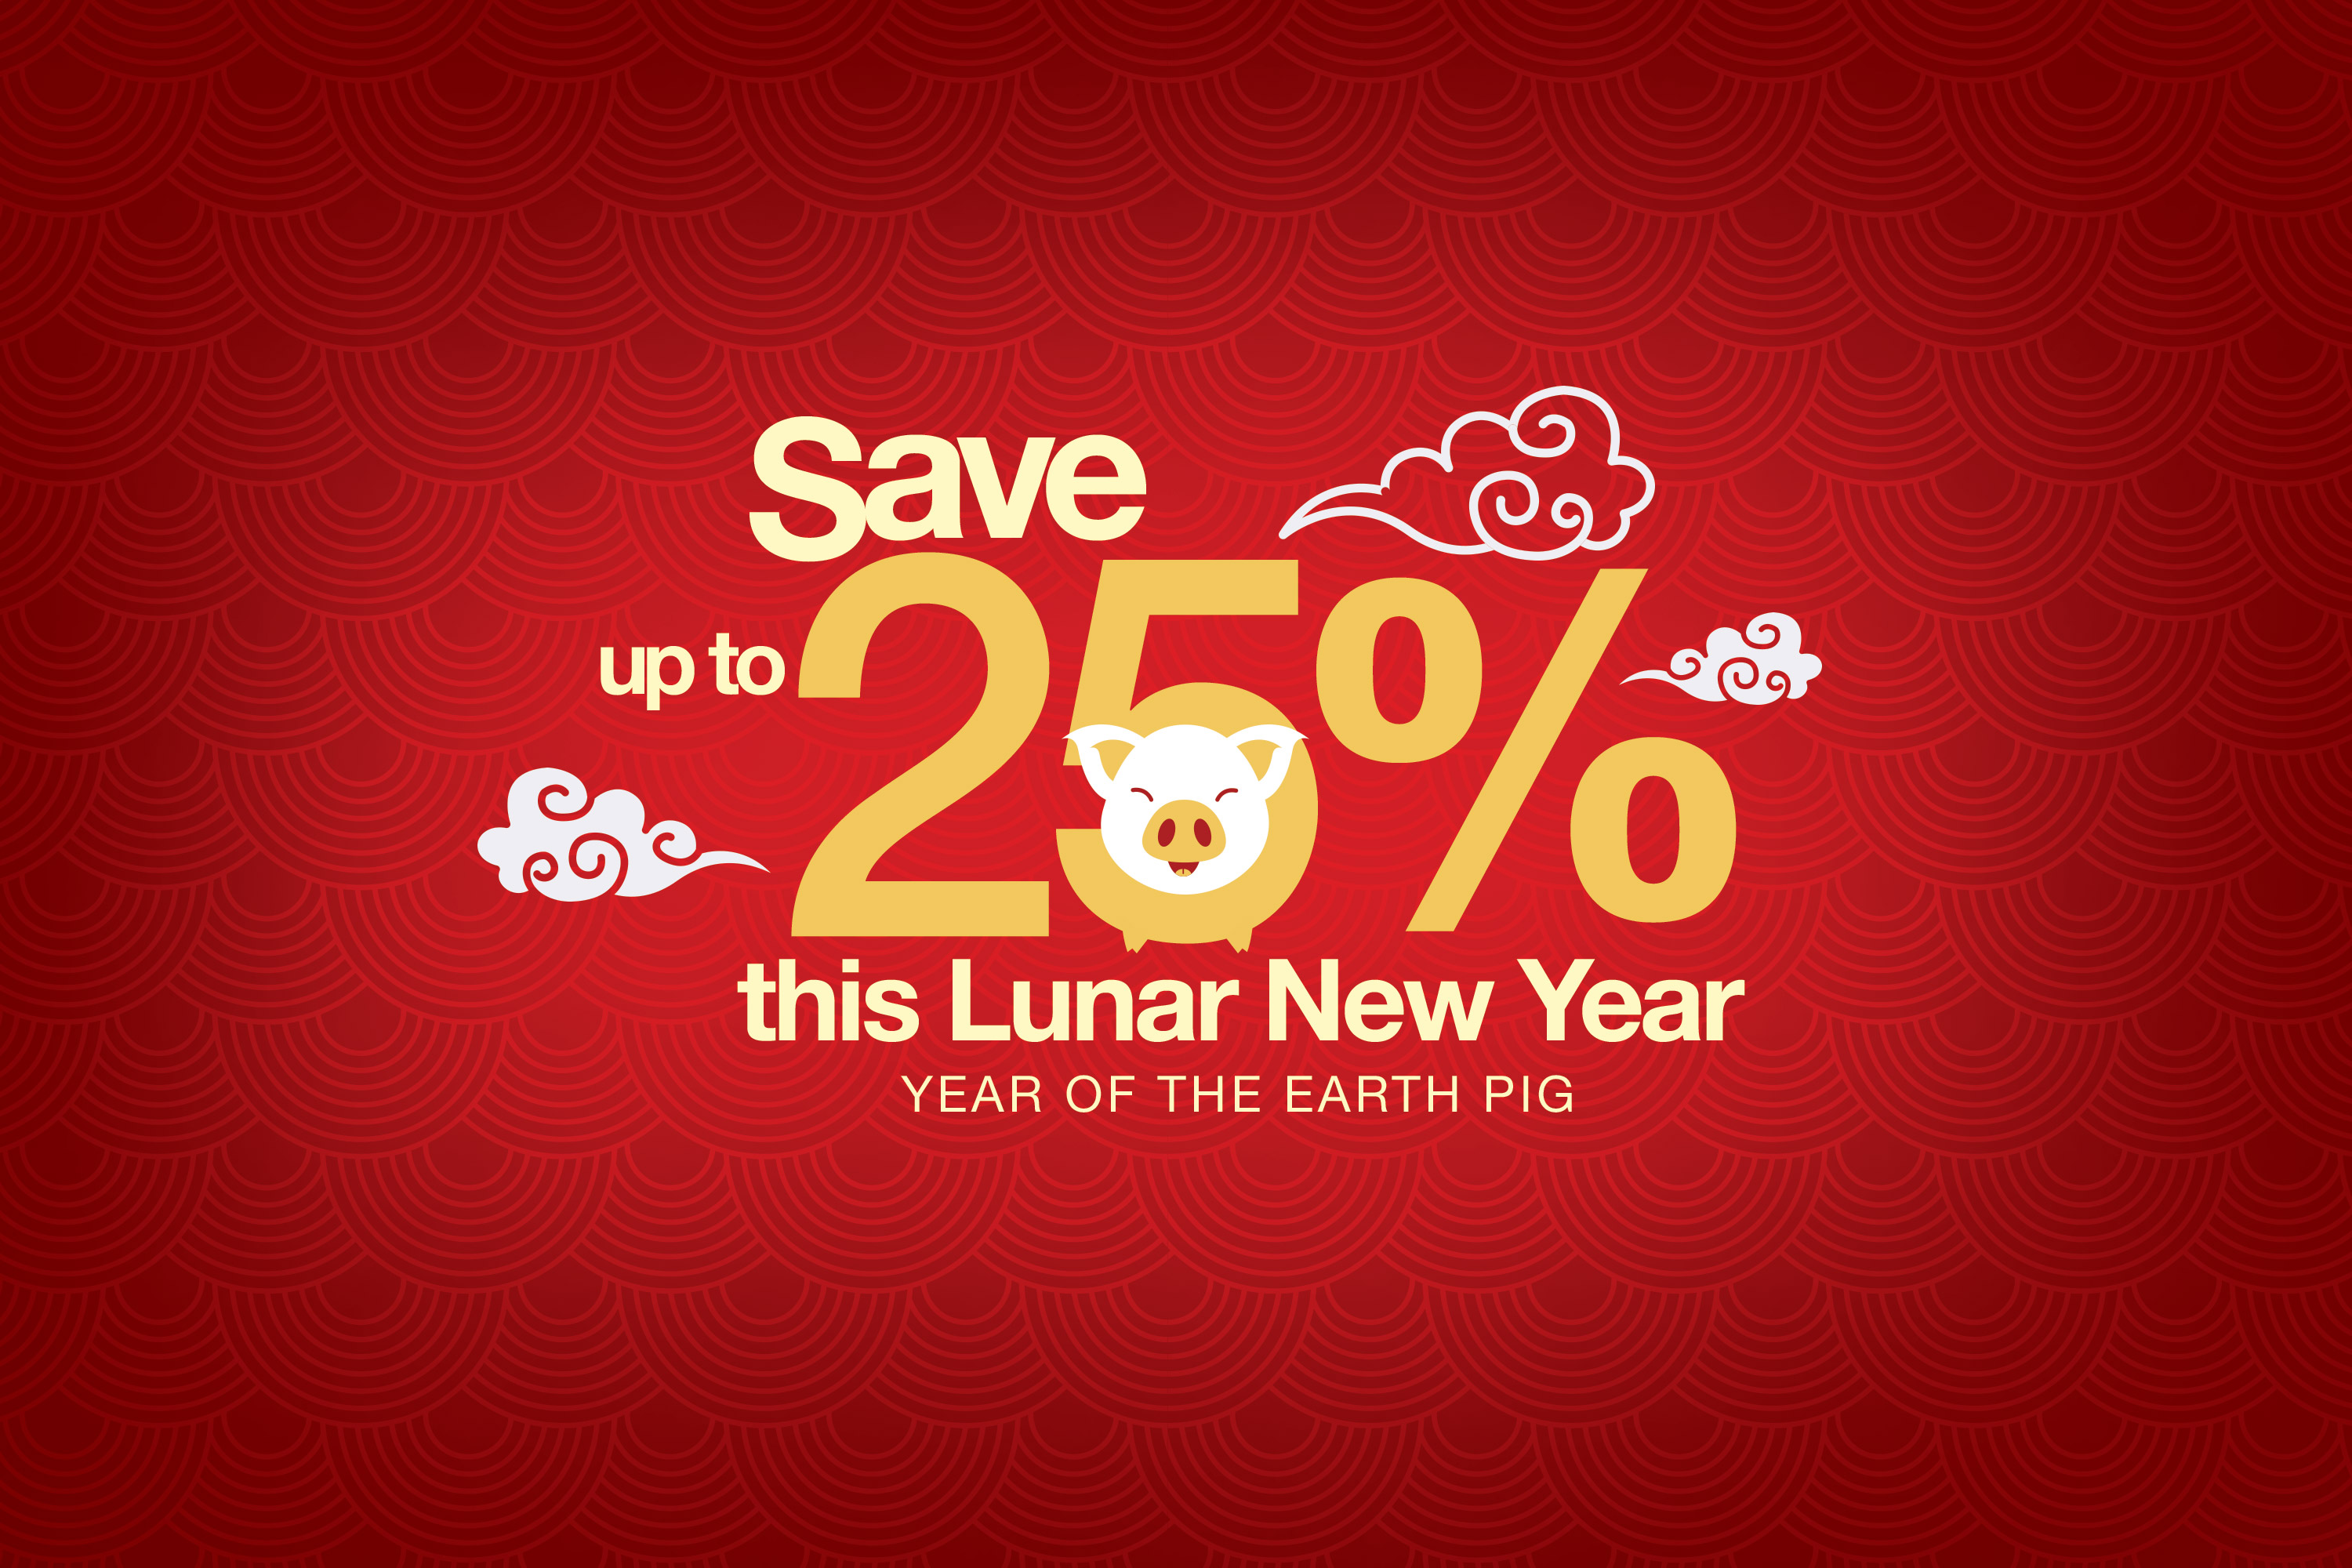 Lunar New Year - 25% OFF!